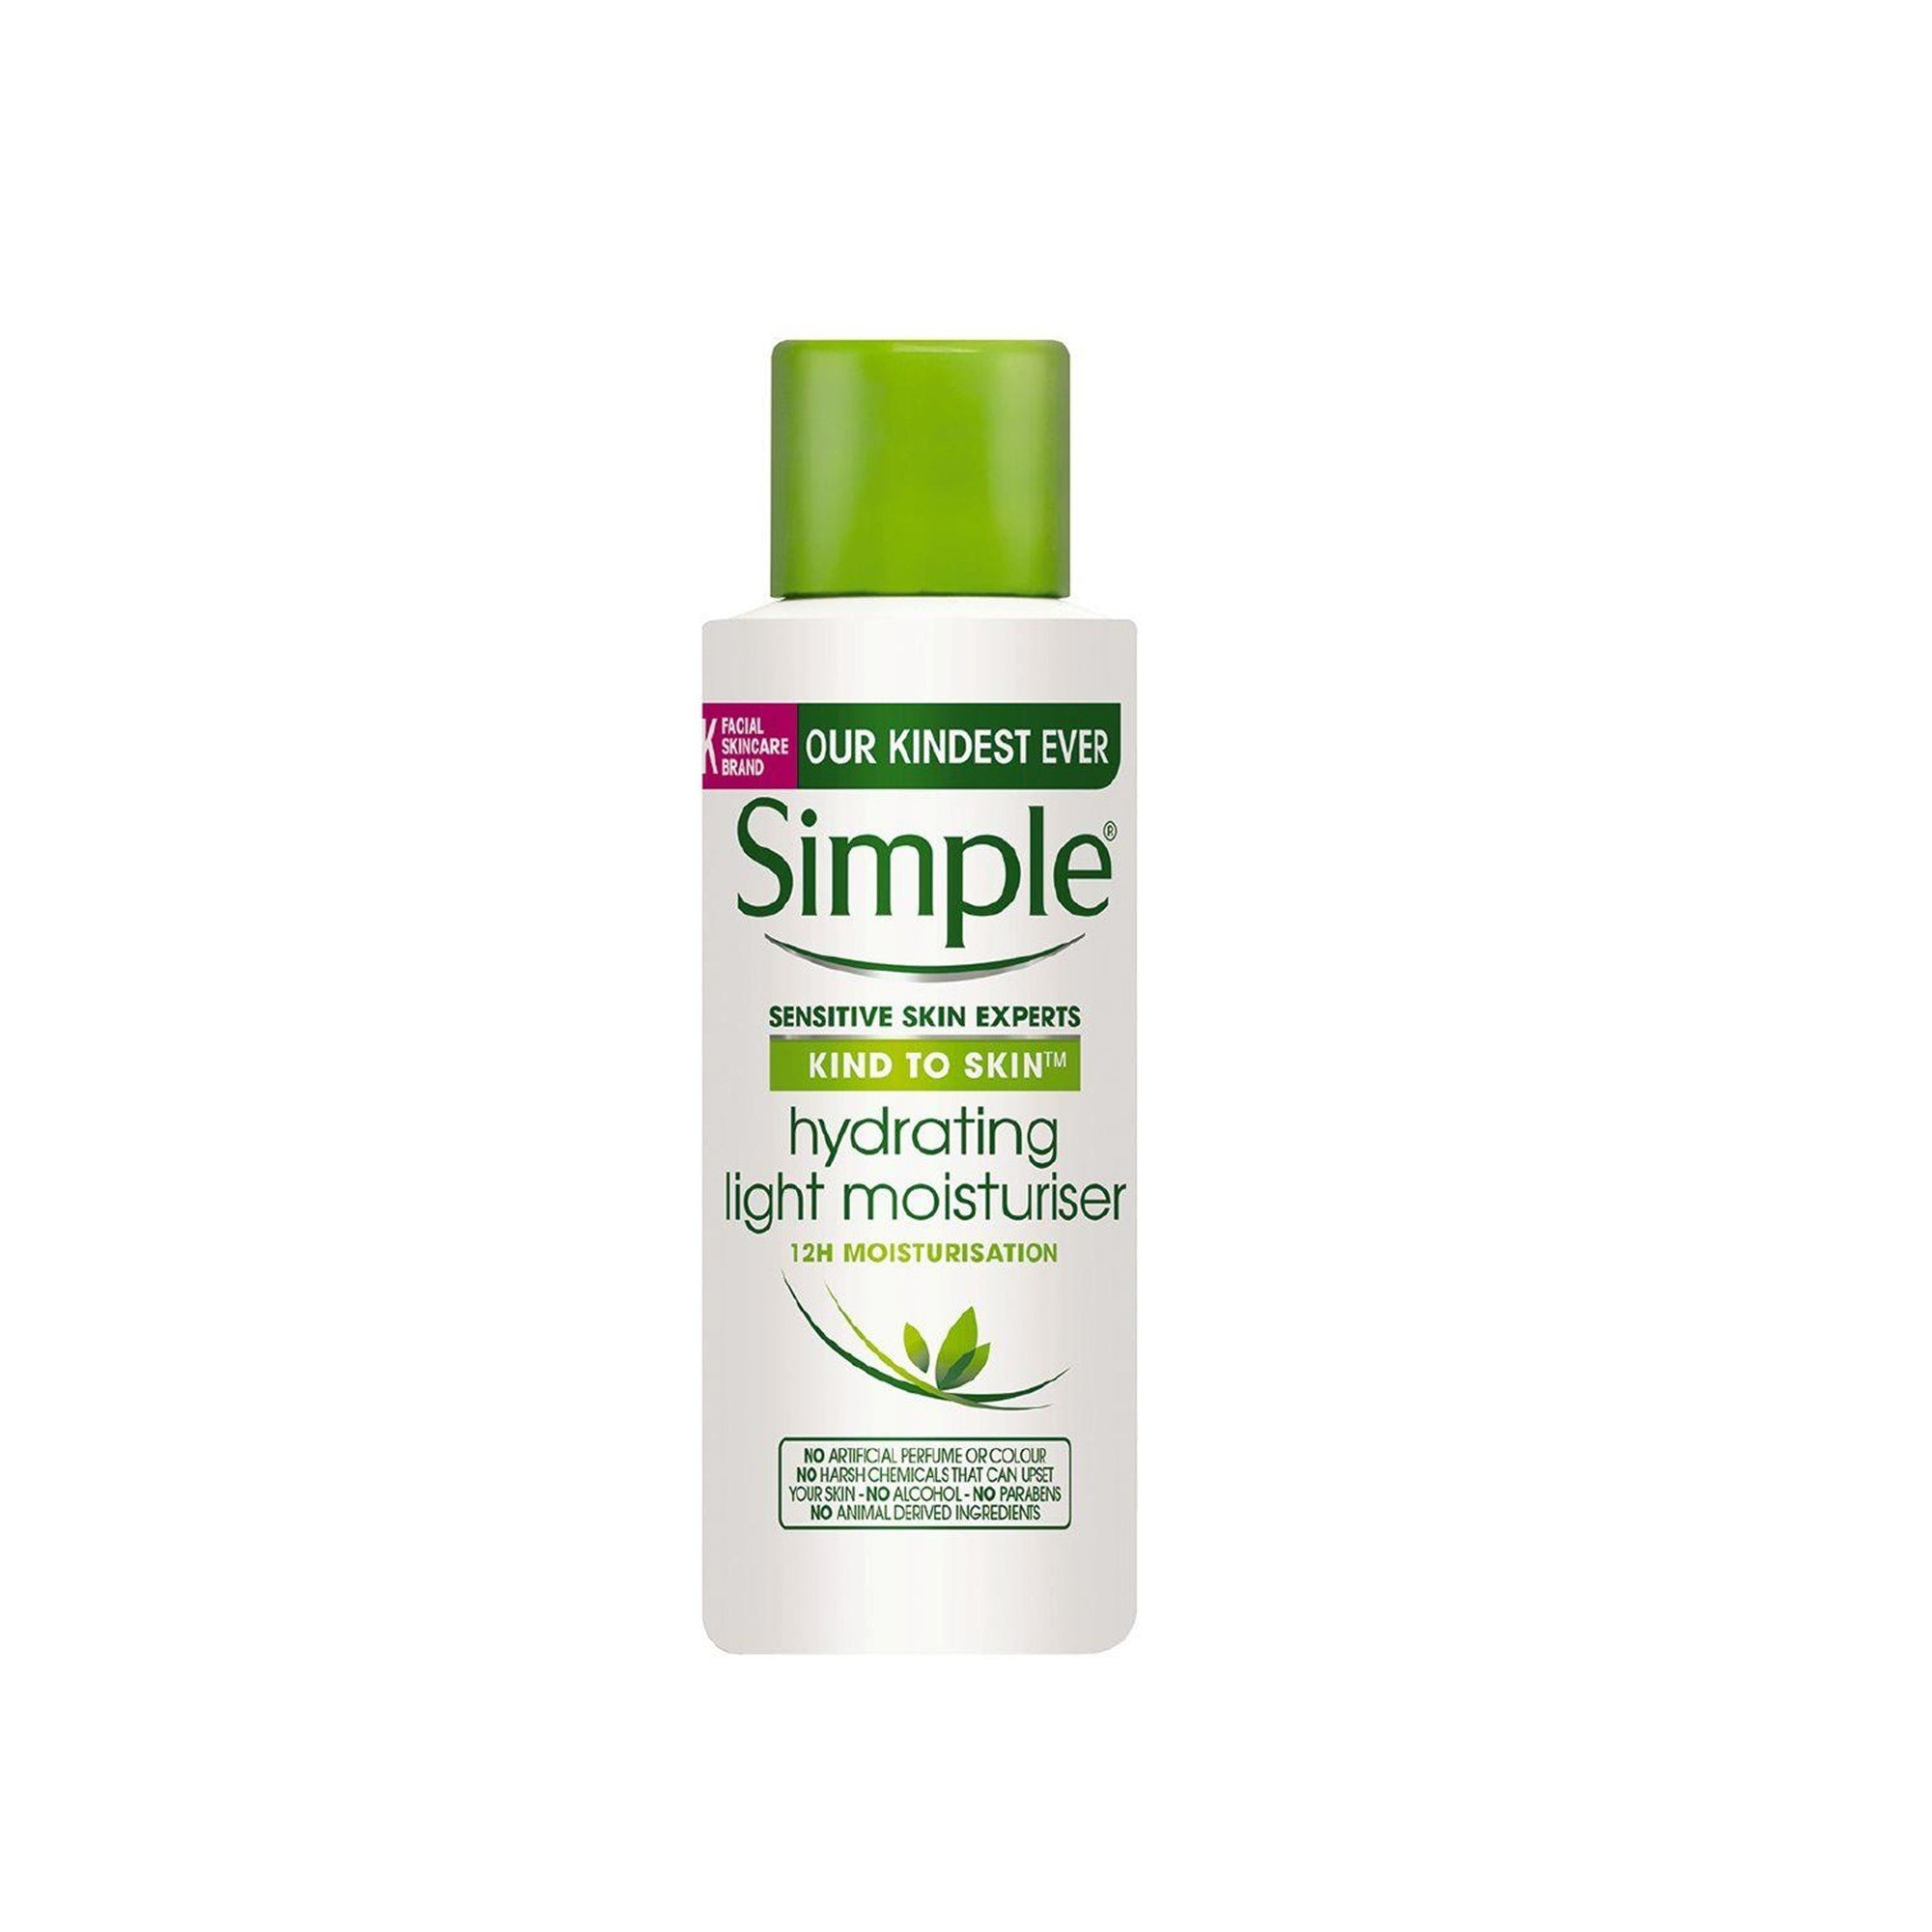 Simple Hydrating Light Moisturiser 50ml